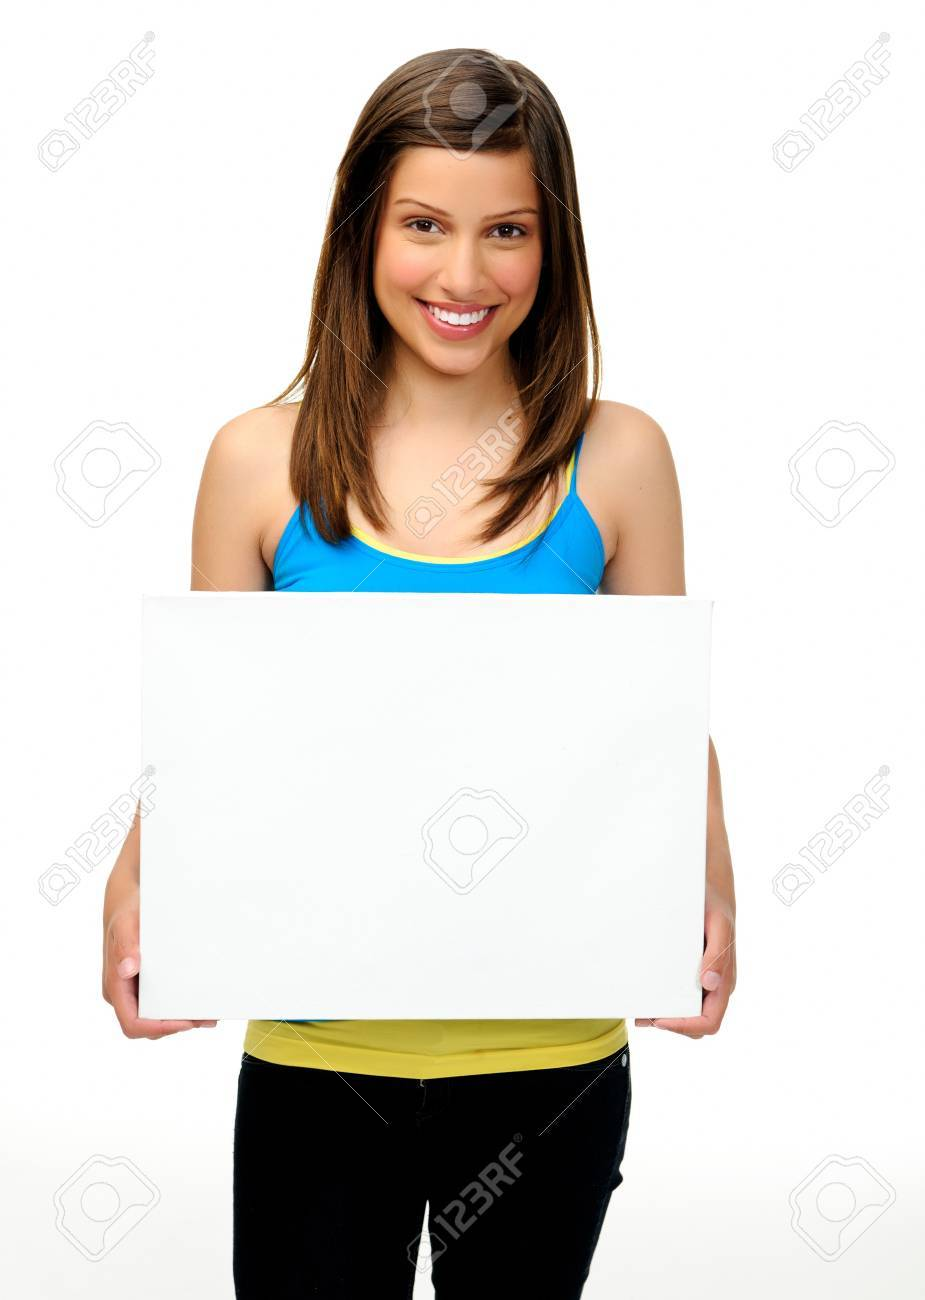 young woman holds a blank board providing copyspace for any advertising. friendly, approachable and smiling Stock Photo - 11070255